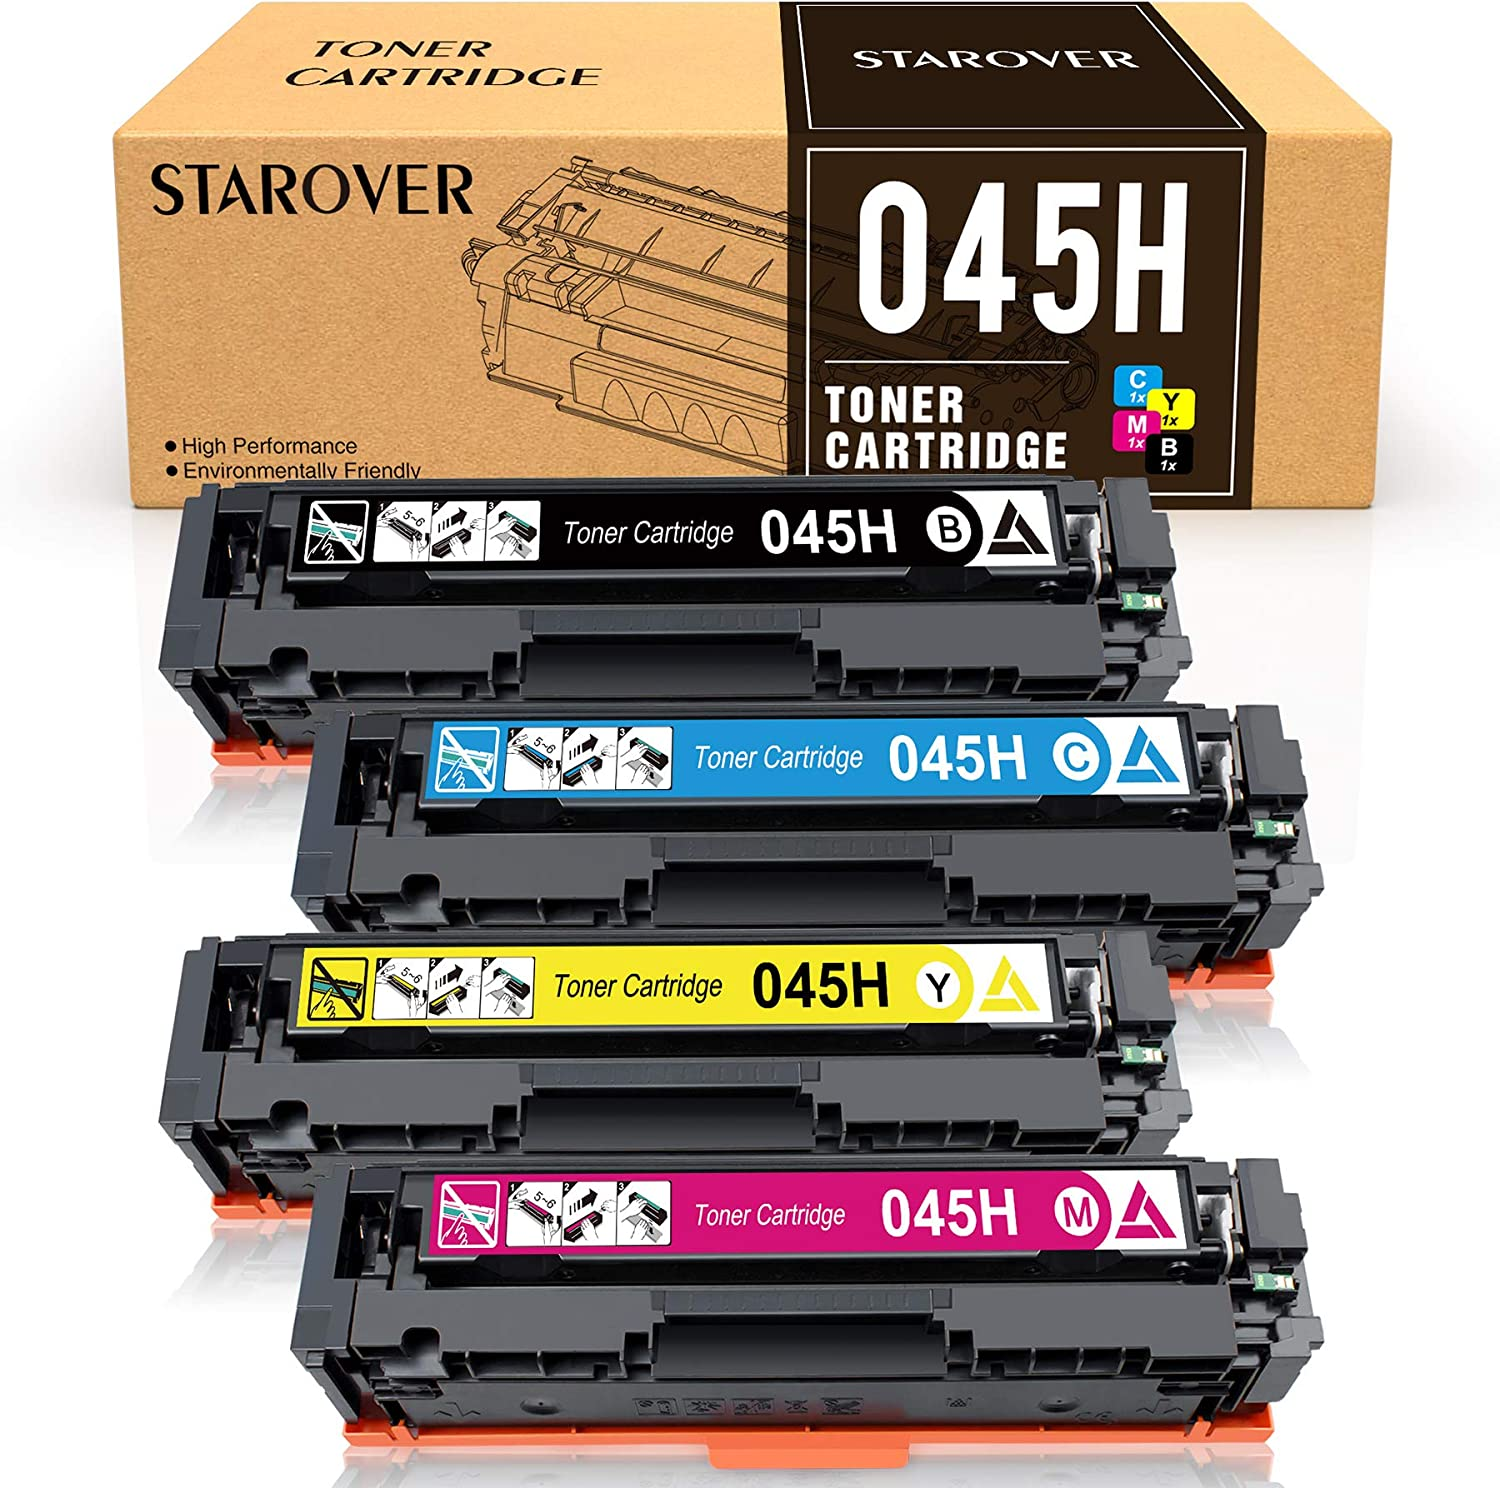 MF6160DW Harris Imaging Supply Compatible Toner Replacement for Canon 3480B001AA LBP 6670DN; MF5850DN MF5880DN MF5960DN MF6180DW Works with: LBP 6300DN CRG119II MF5950DW LBP 6650DN Black